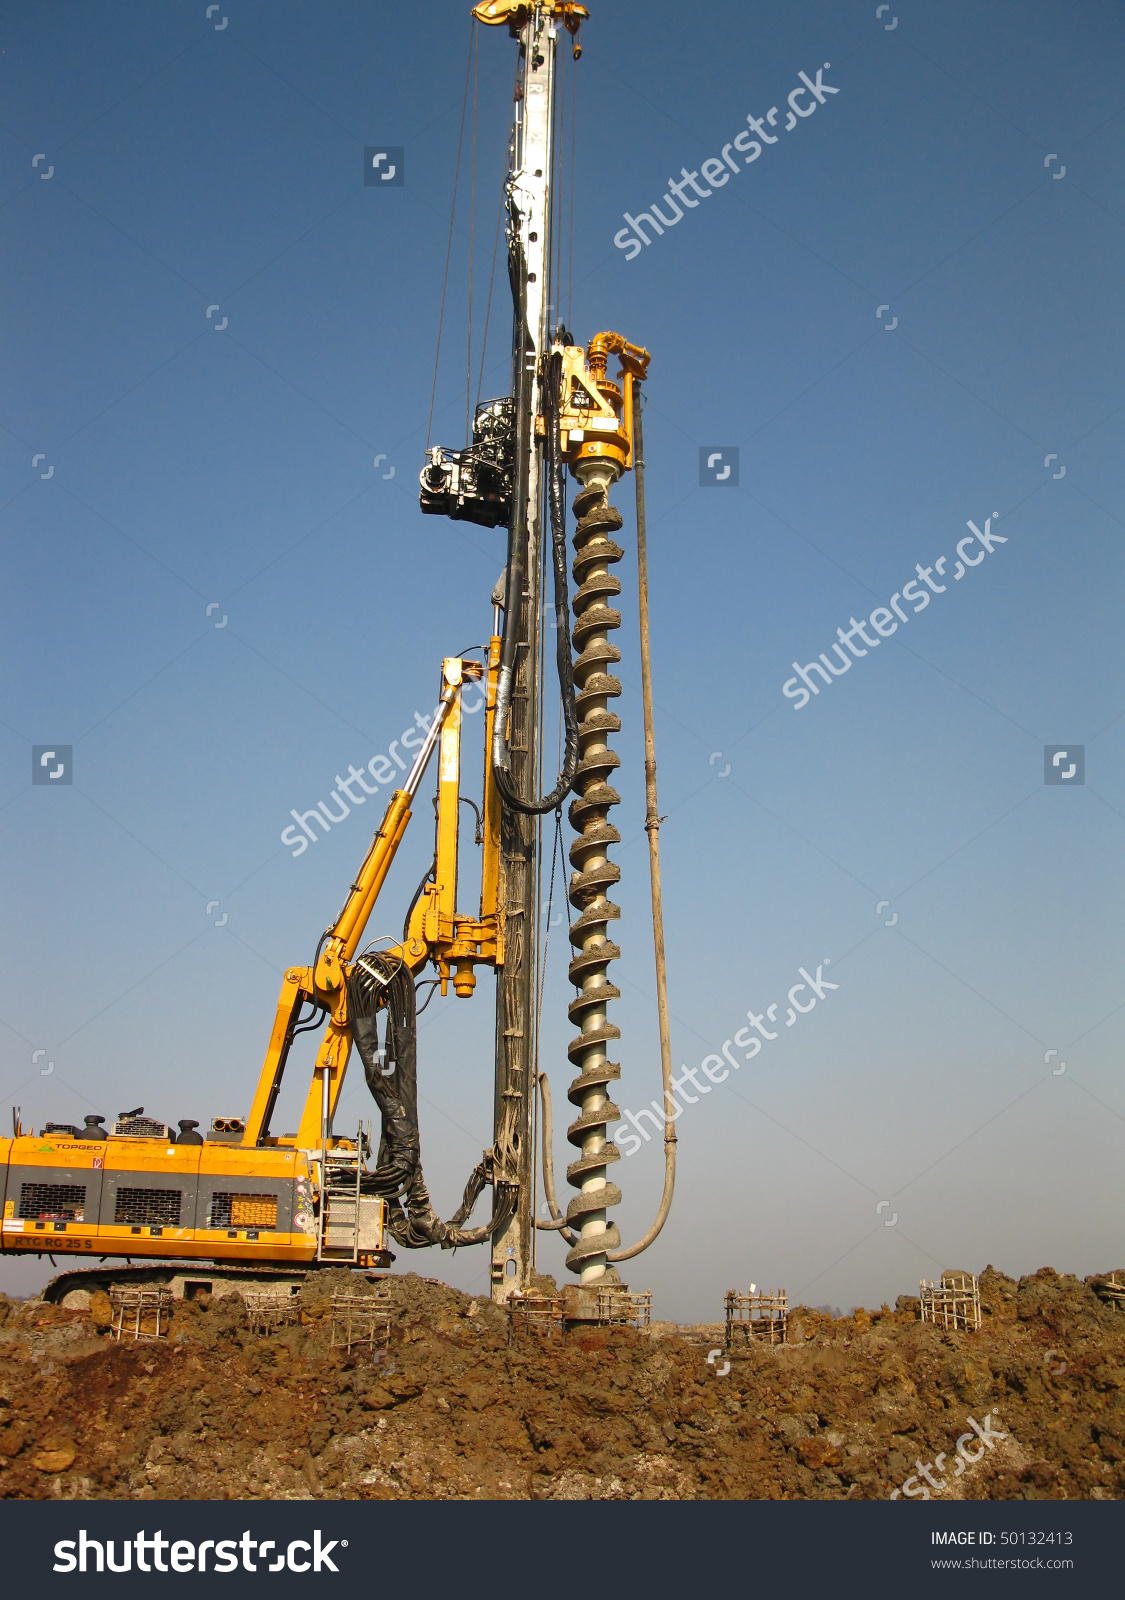 Machine Drilling Holes Ground Stock Photo 50132413.